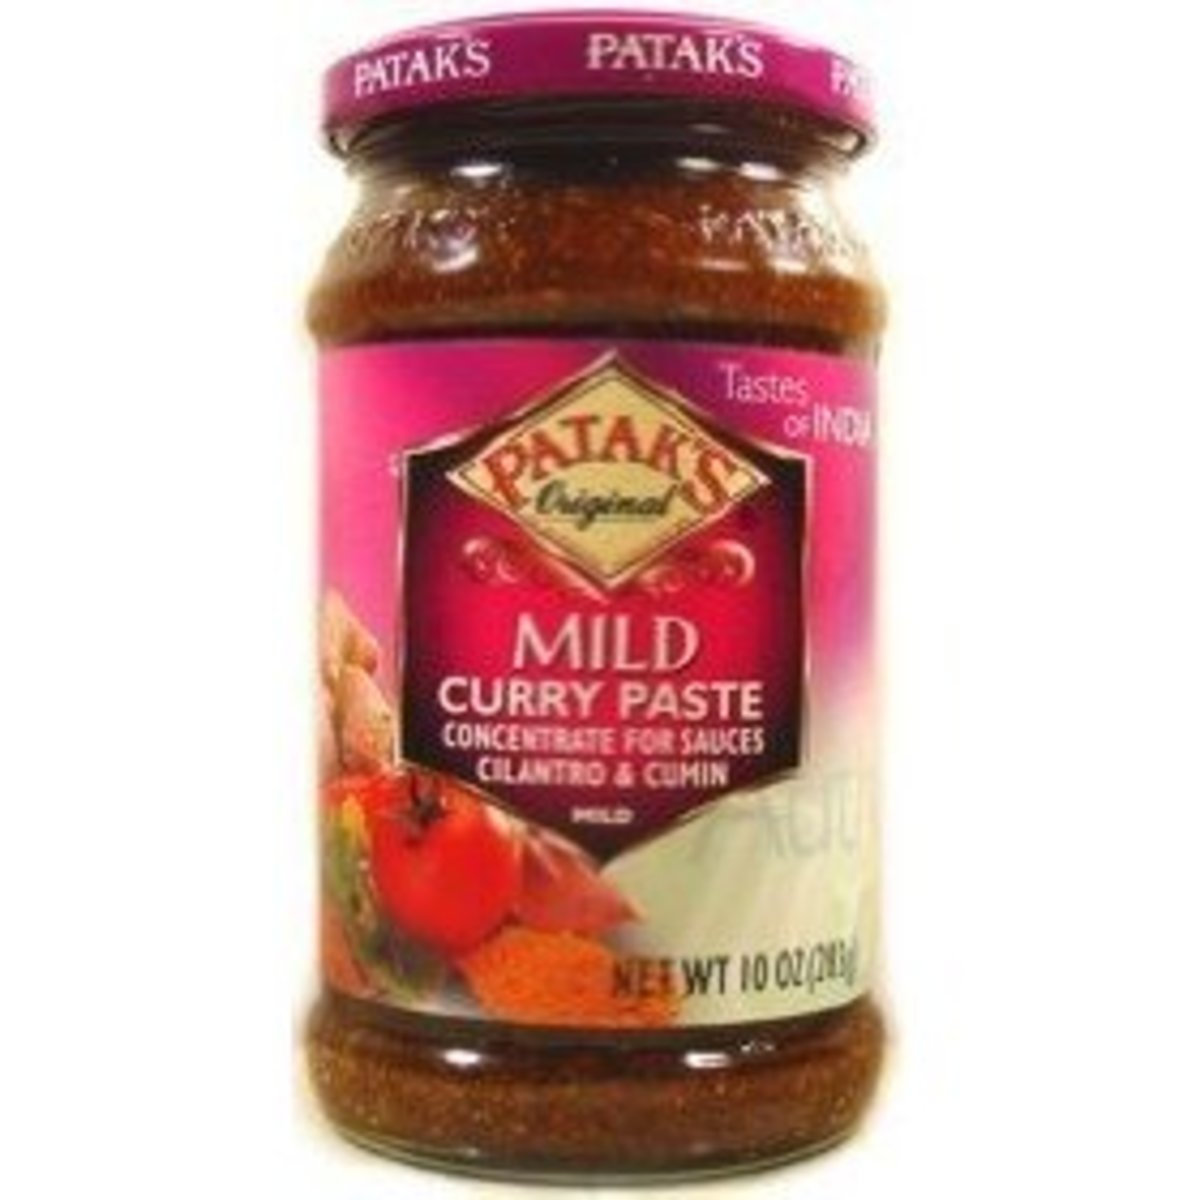 How to cook curry the easy way using Patak's curry paste